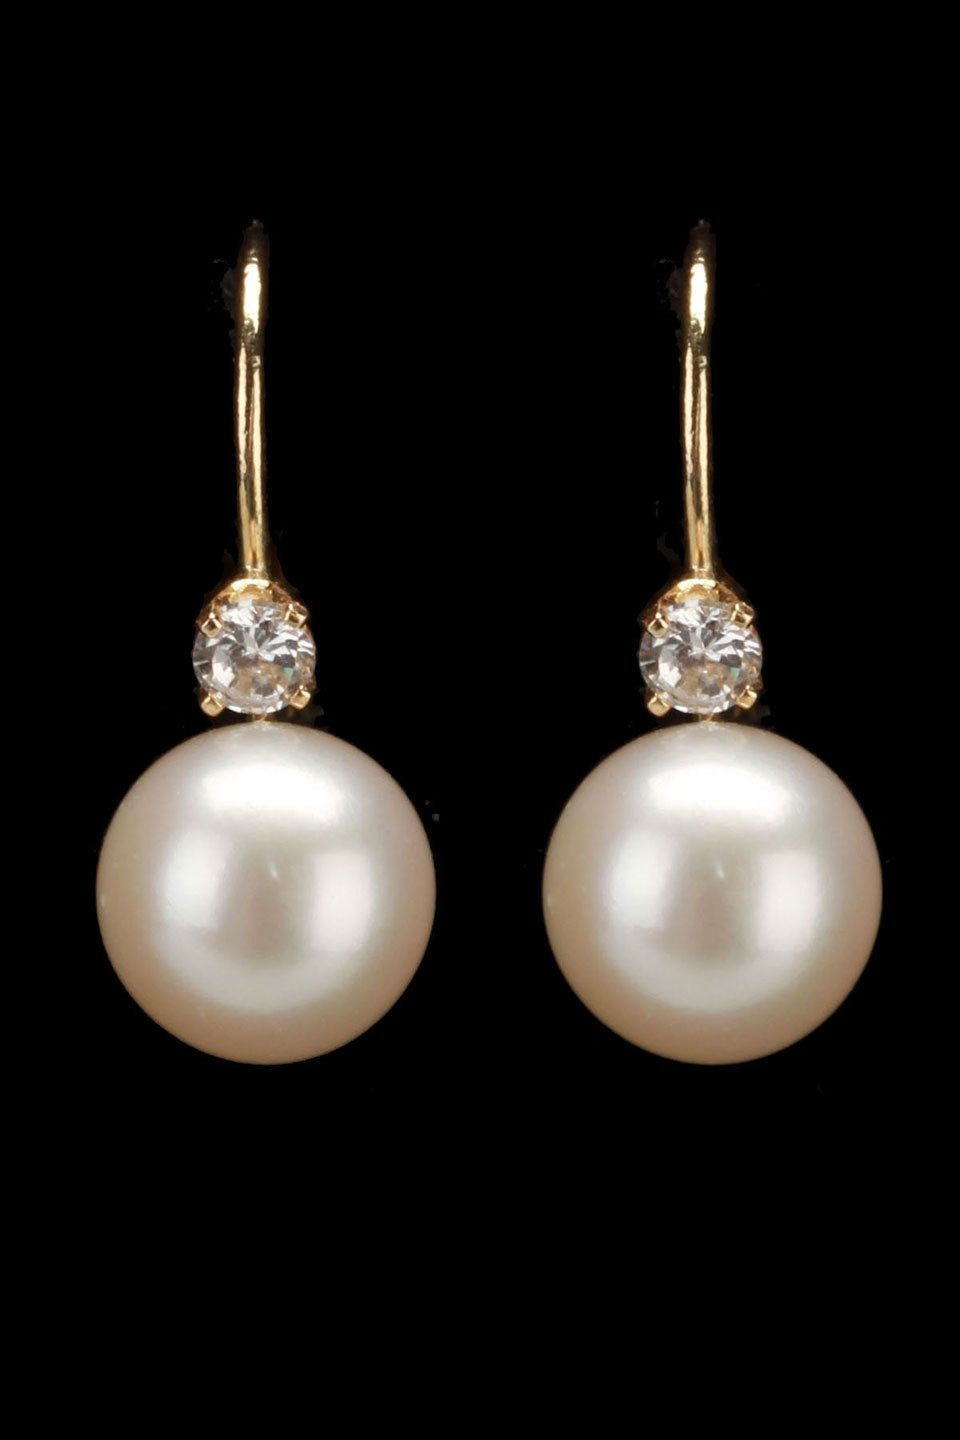 Dangle Pearl Earrings, Pearl Drop Earrings,freshwater Pearl Earring Pertaining To Most Recent Dangling Freshwater Cultured Pearl Rings (Gallery 1 of 25)